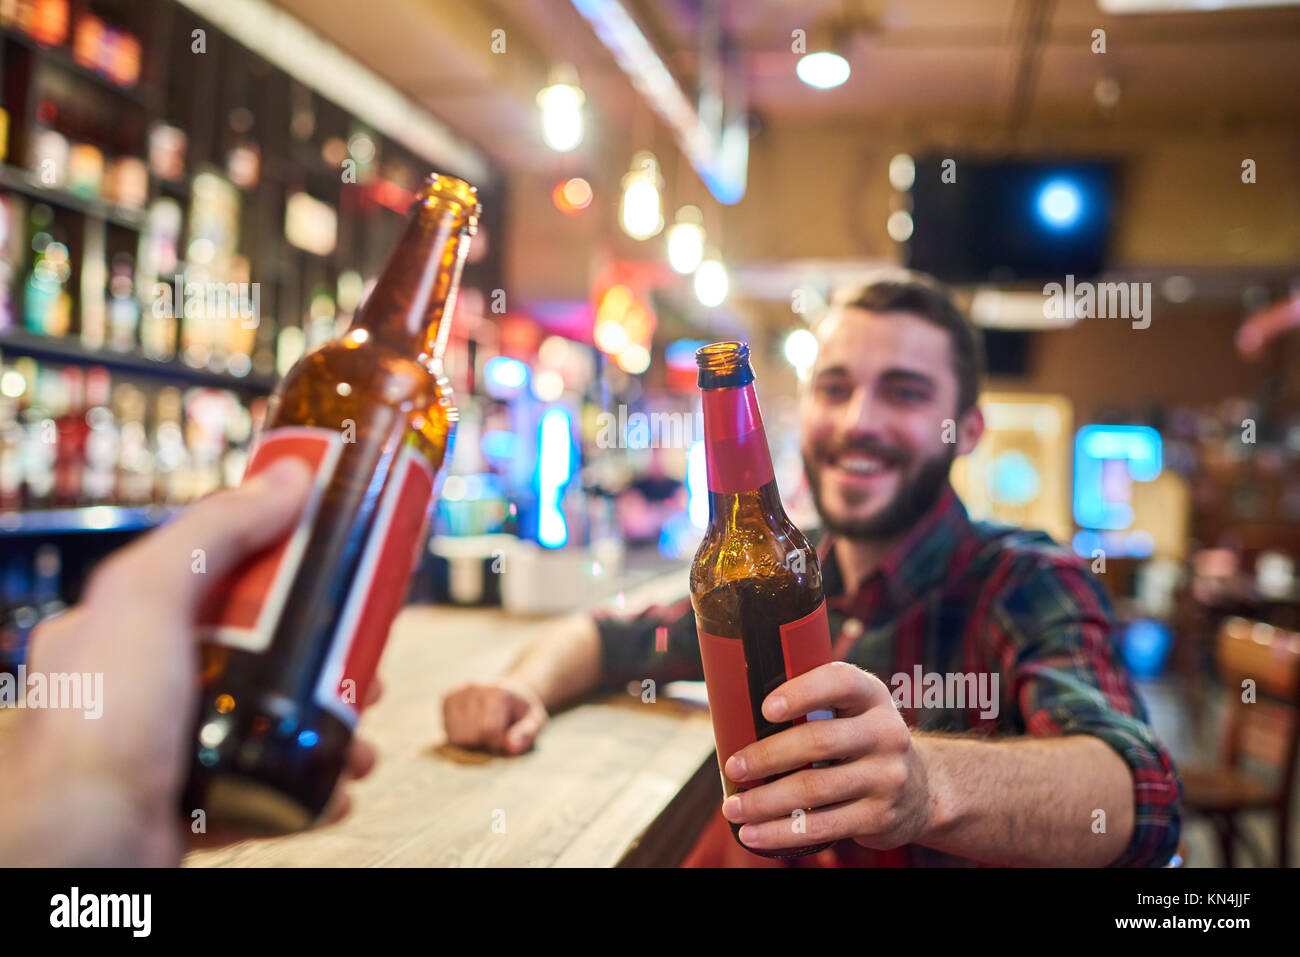 Happy Young Man Clinking Bottles with Friend in Bar - Stock Image